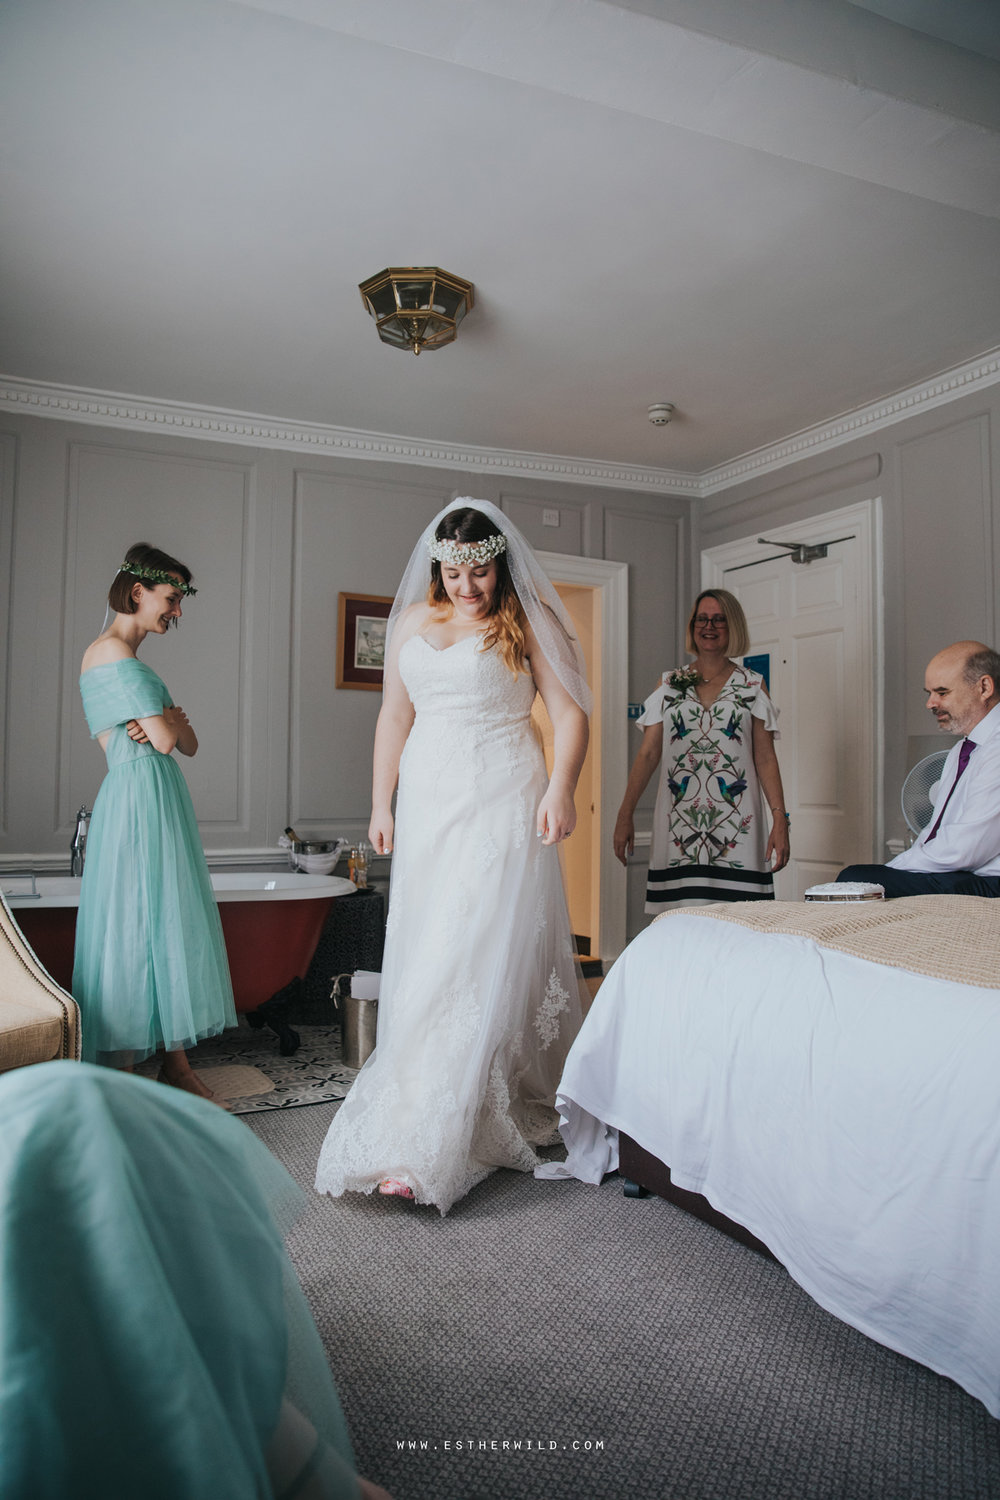 Norwich_Castle_Arcade_Grosvenor_Chip_Birdcage_Cathedral_Cloisters_Refectory_Wedding_Photography_Esther_Wild_Photographer_Norfolk_Kings_Lynn_3R8A0503.jpg